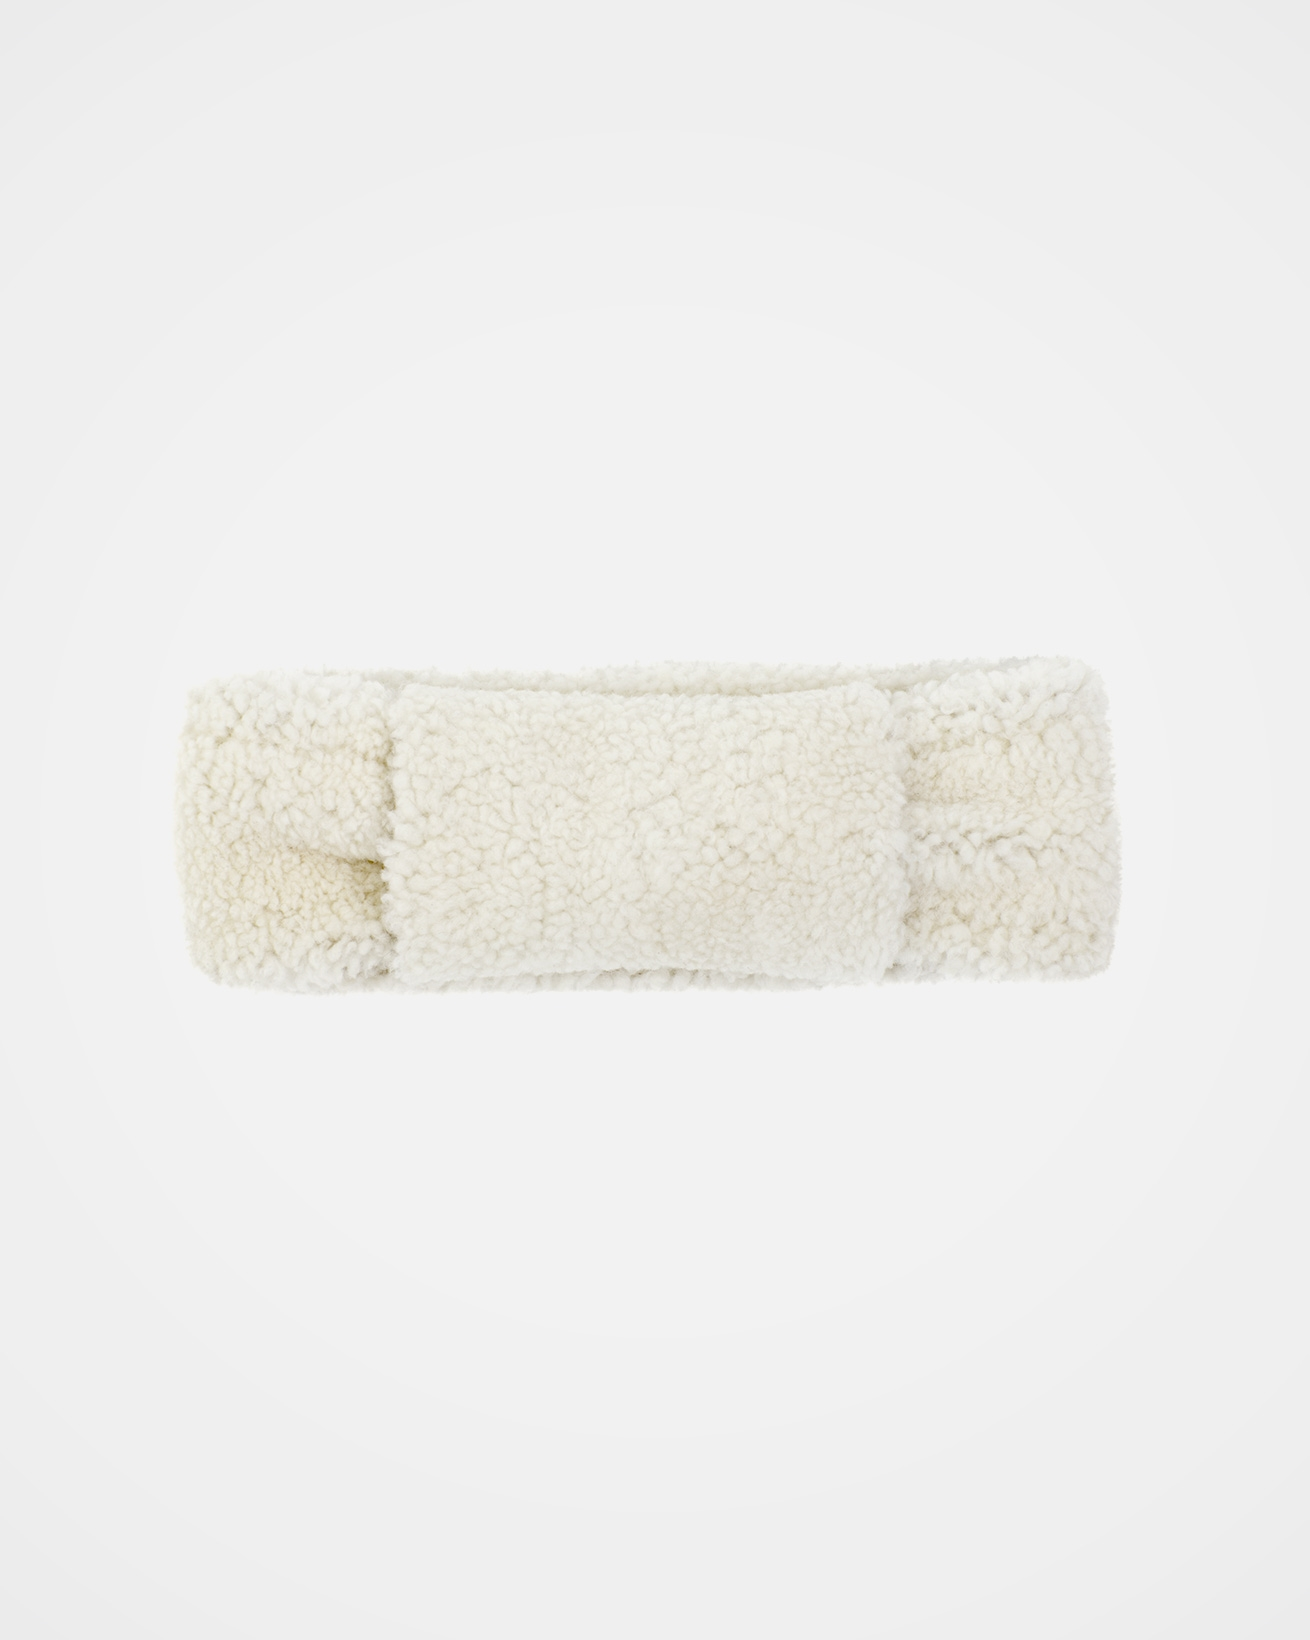 7635_sheepskin-headband_flat_web.jpg